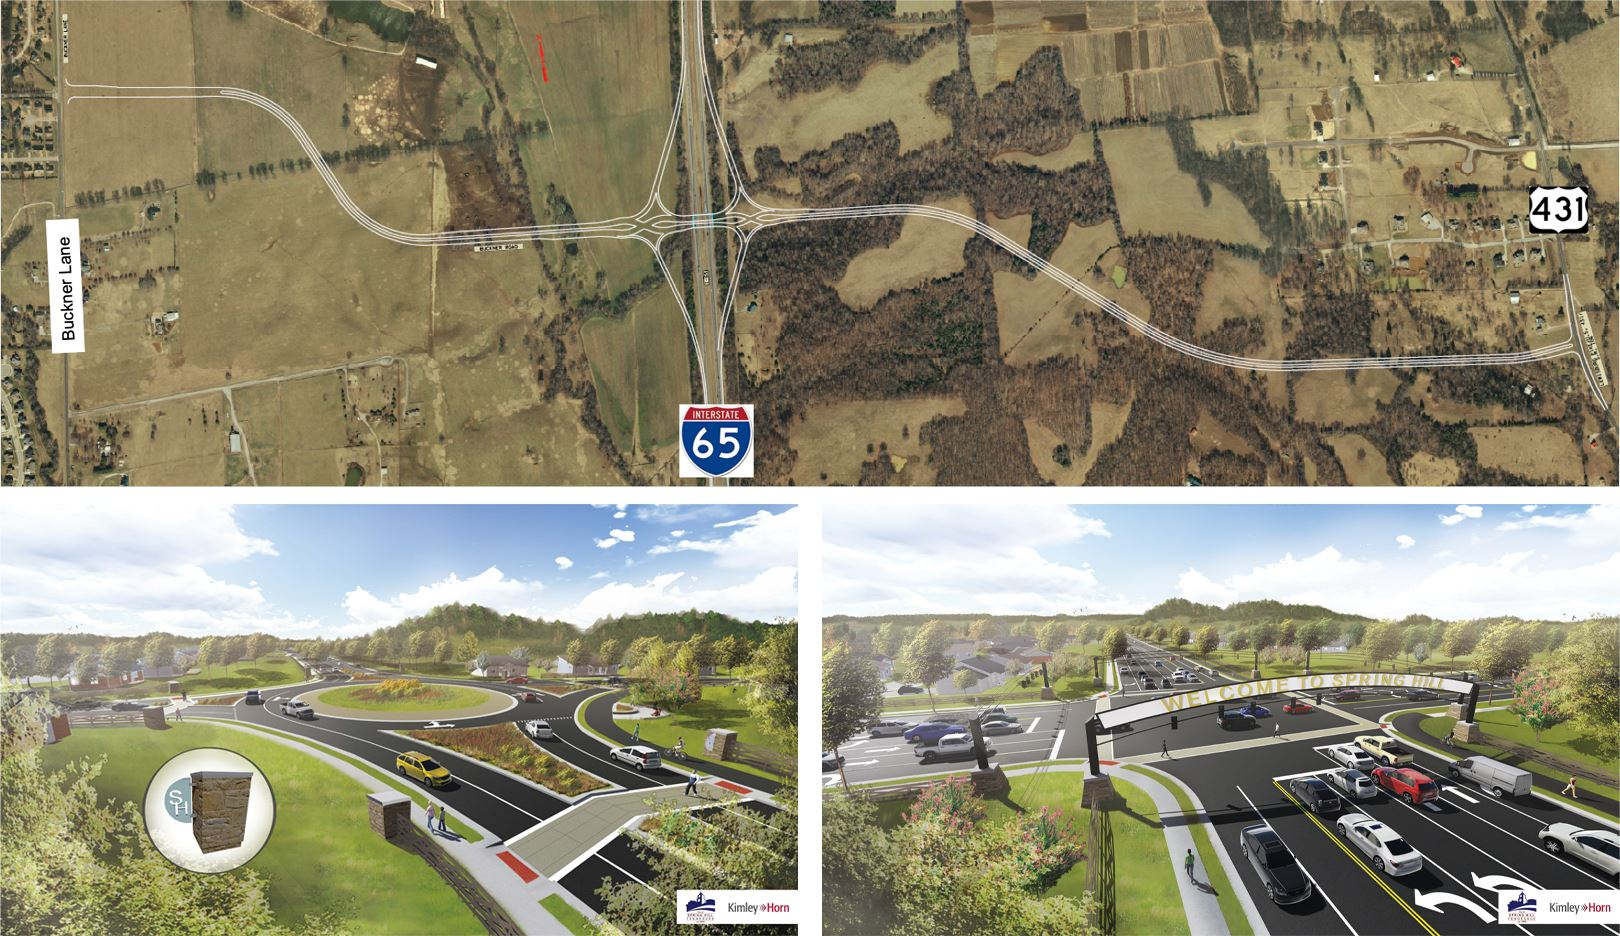 Buckner Road and Interstate 65 Interchange